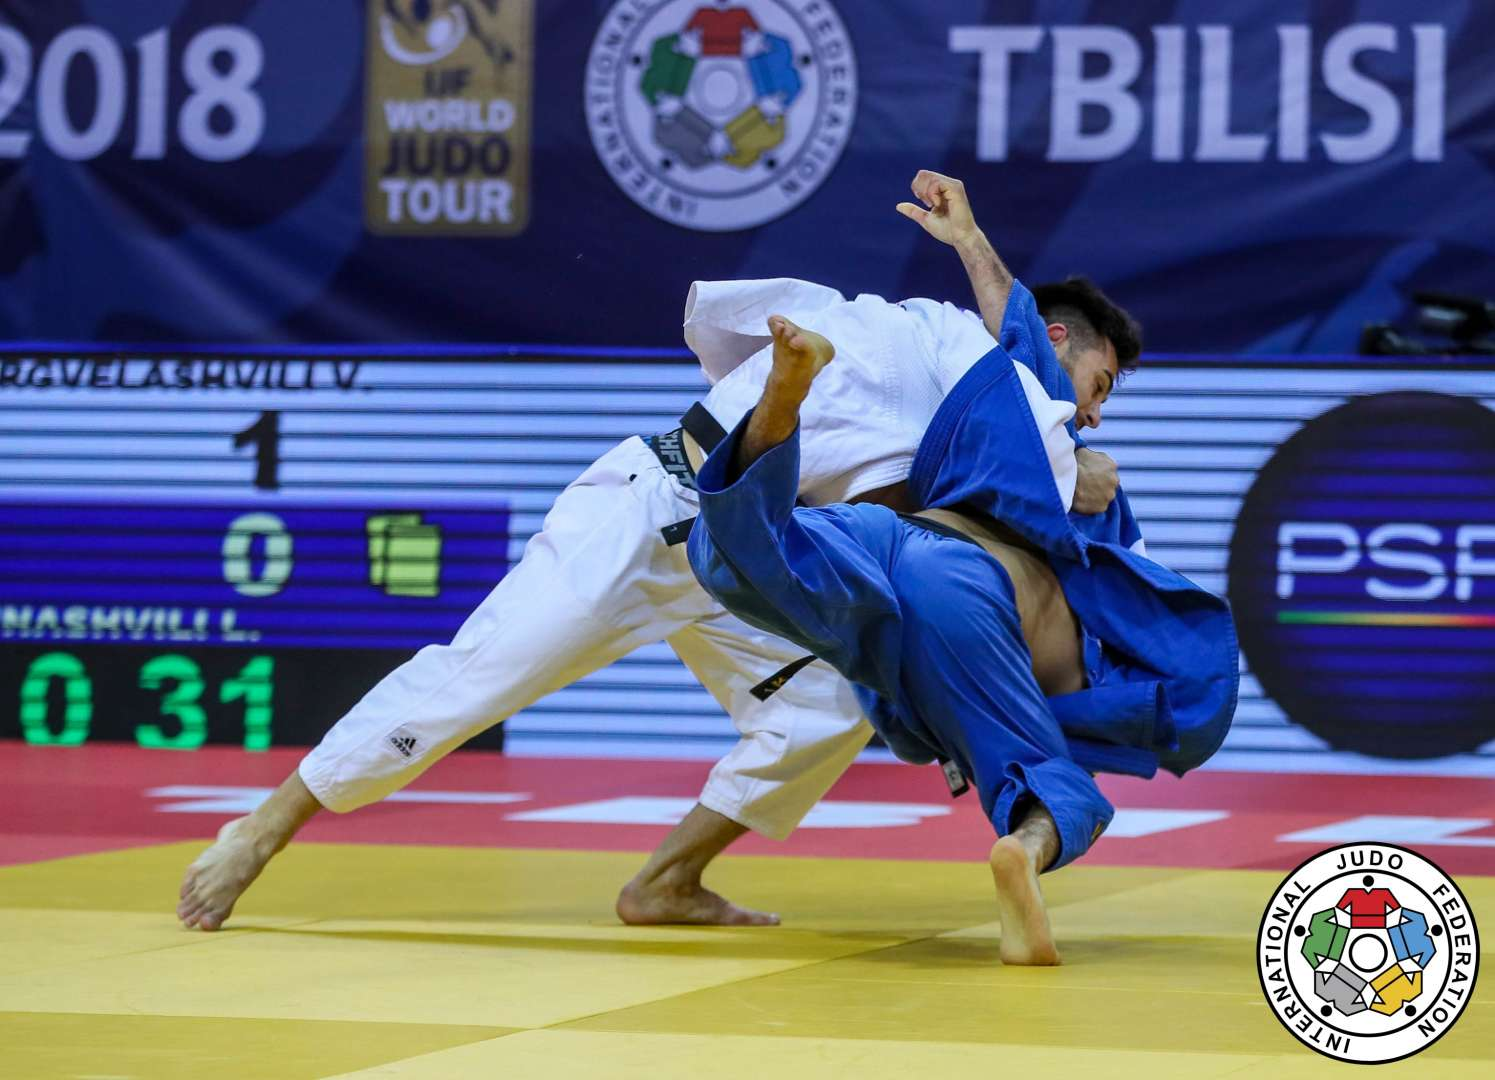 Jasleen Singh Saini shown excellent performance in the Grand Prix Tbilisi 2019 but just miss the medal